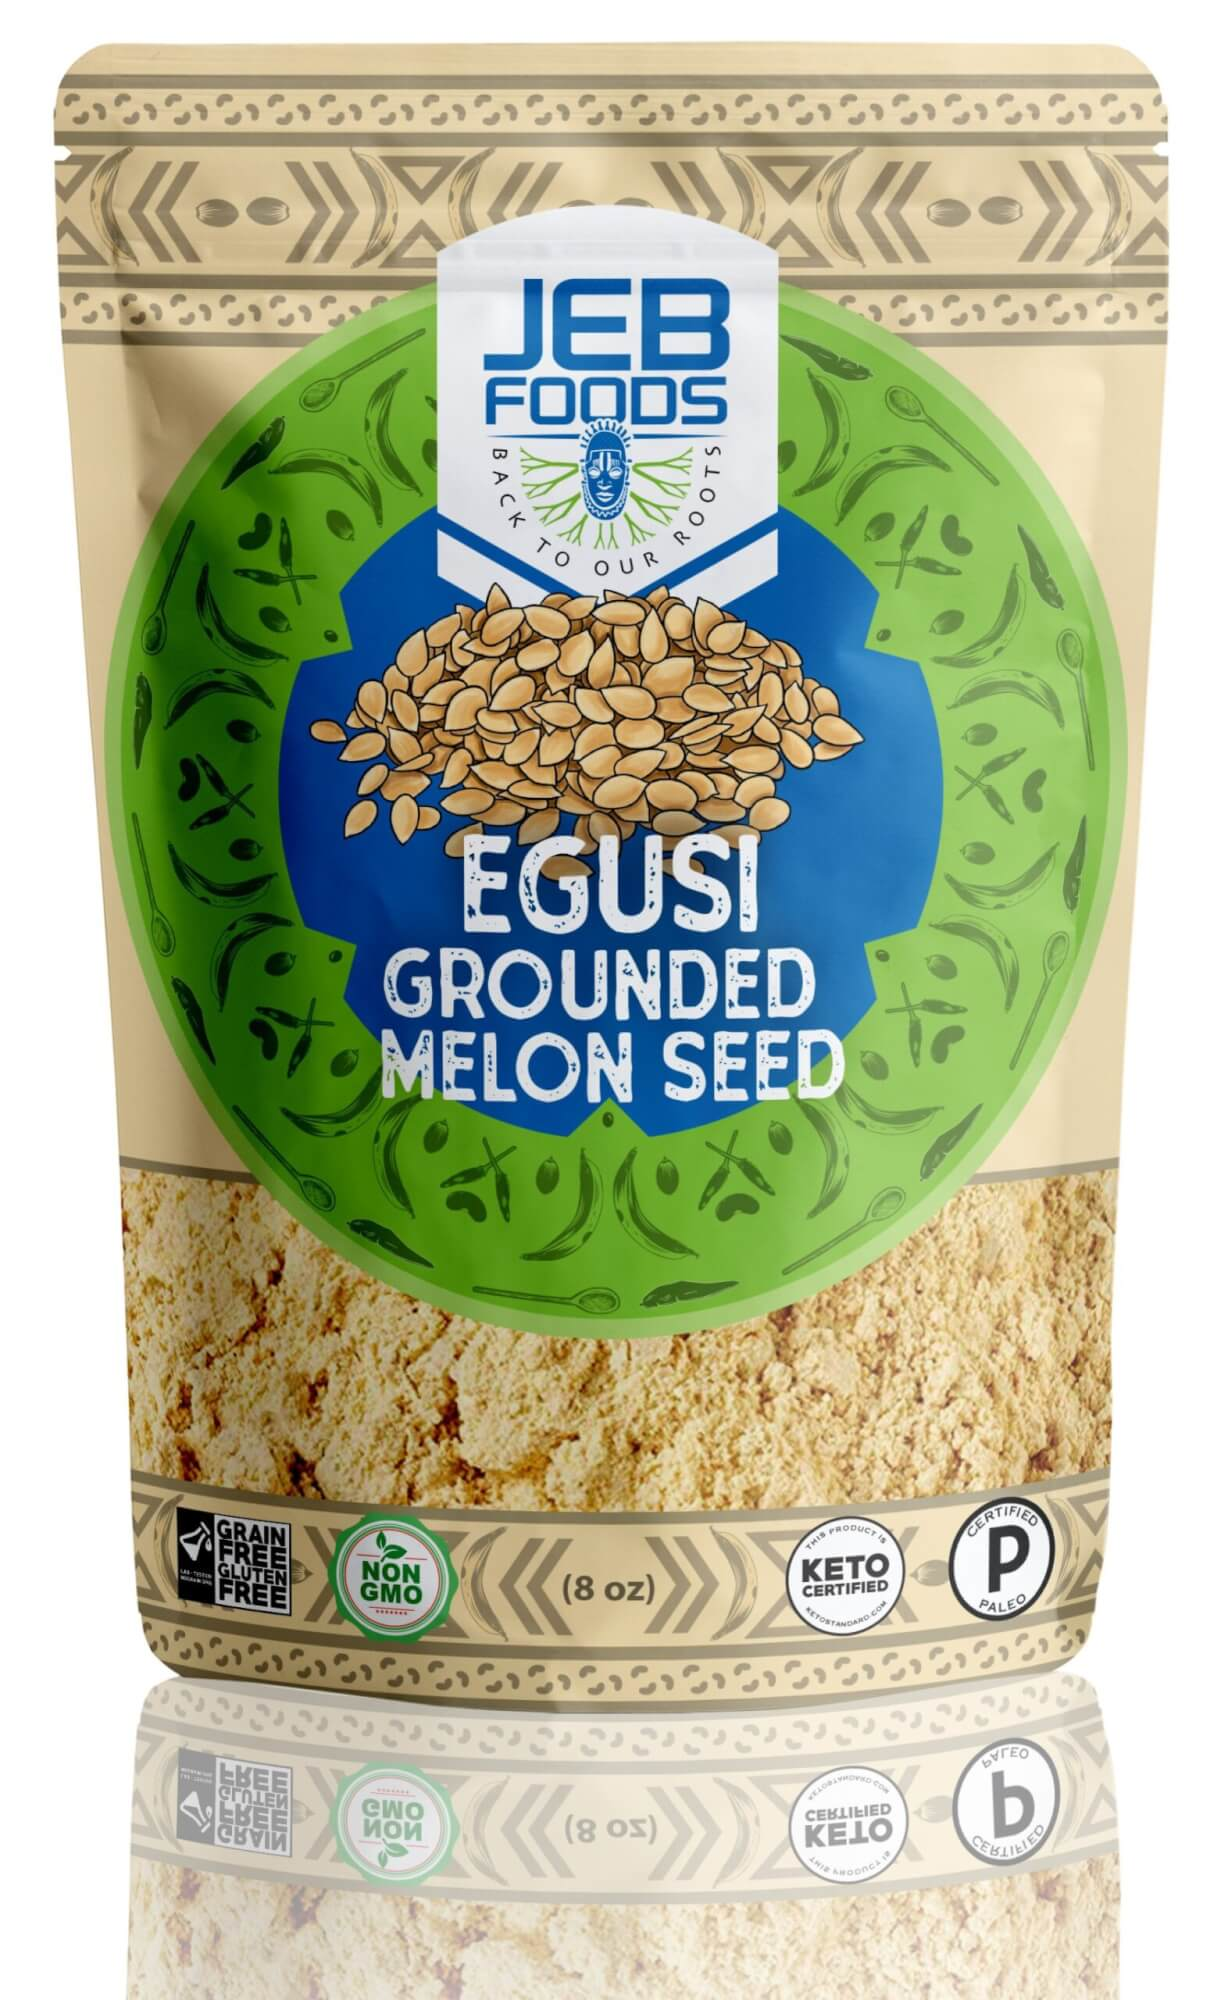 Egusi Ground Melon Seeds 1lb By Jeb Foods